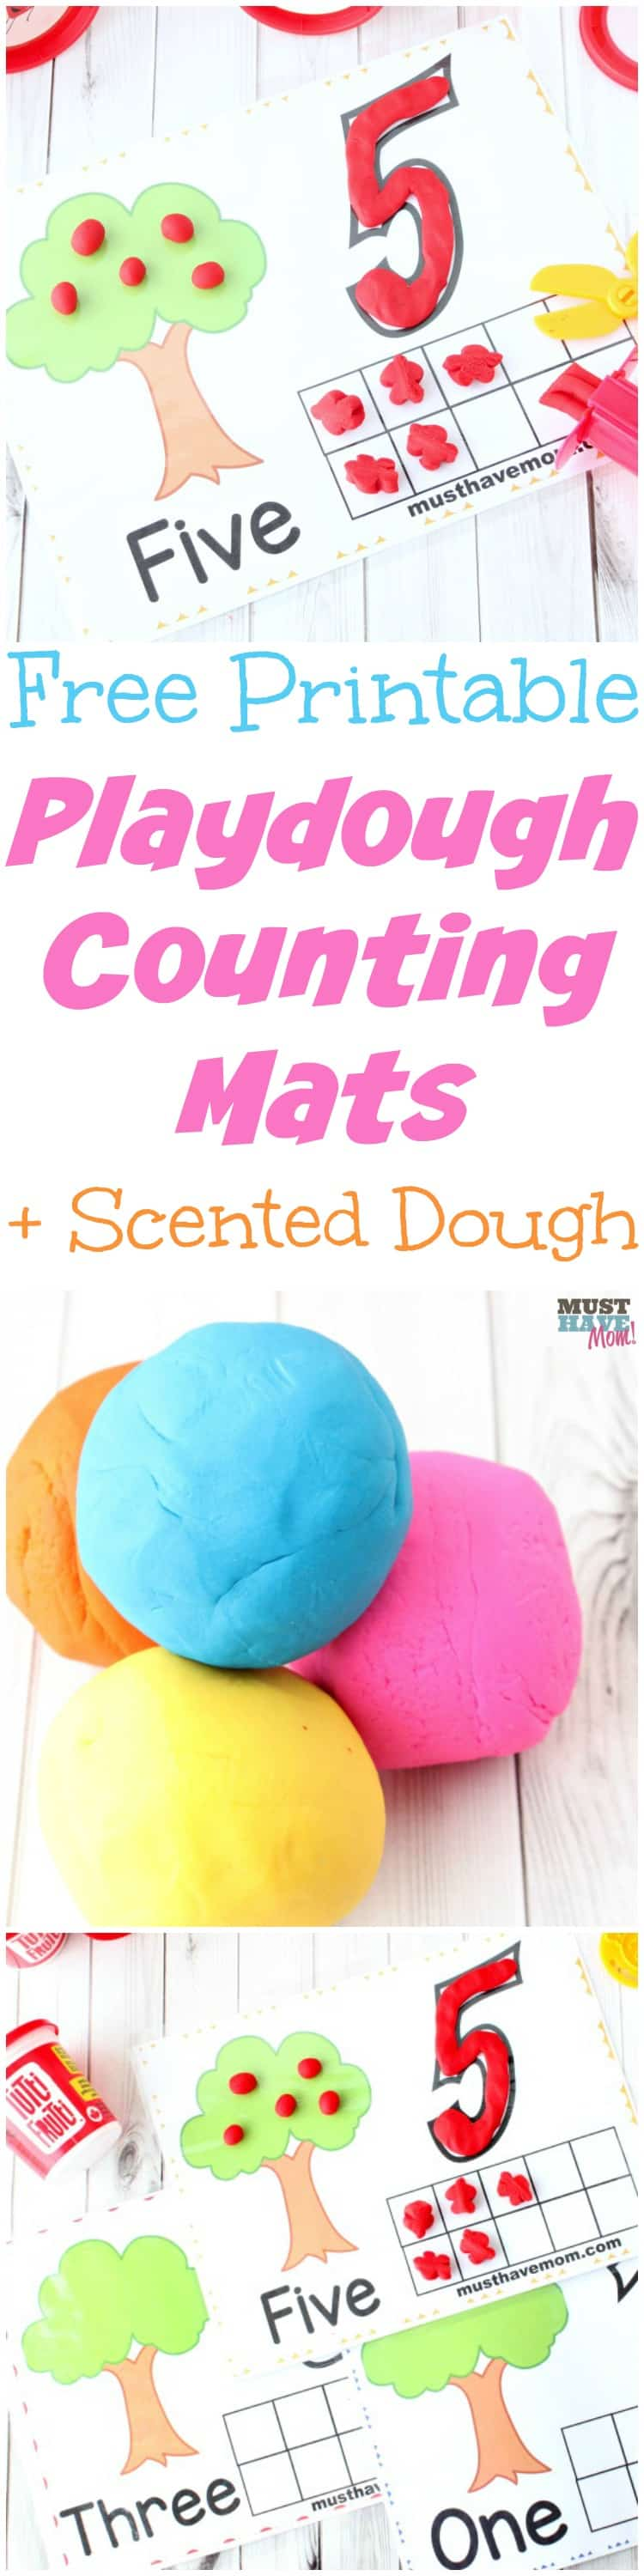 Free printable playdough mats! Free play dough activities help kids learn counting with scented play dough.